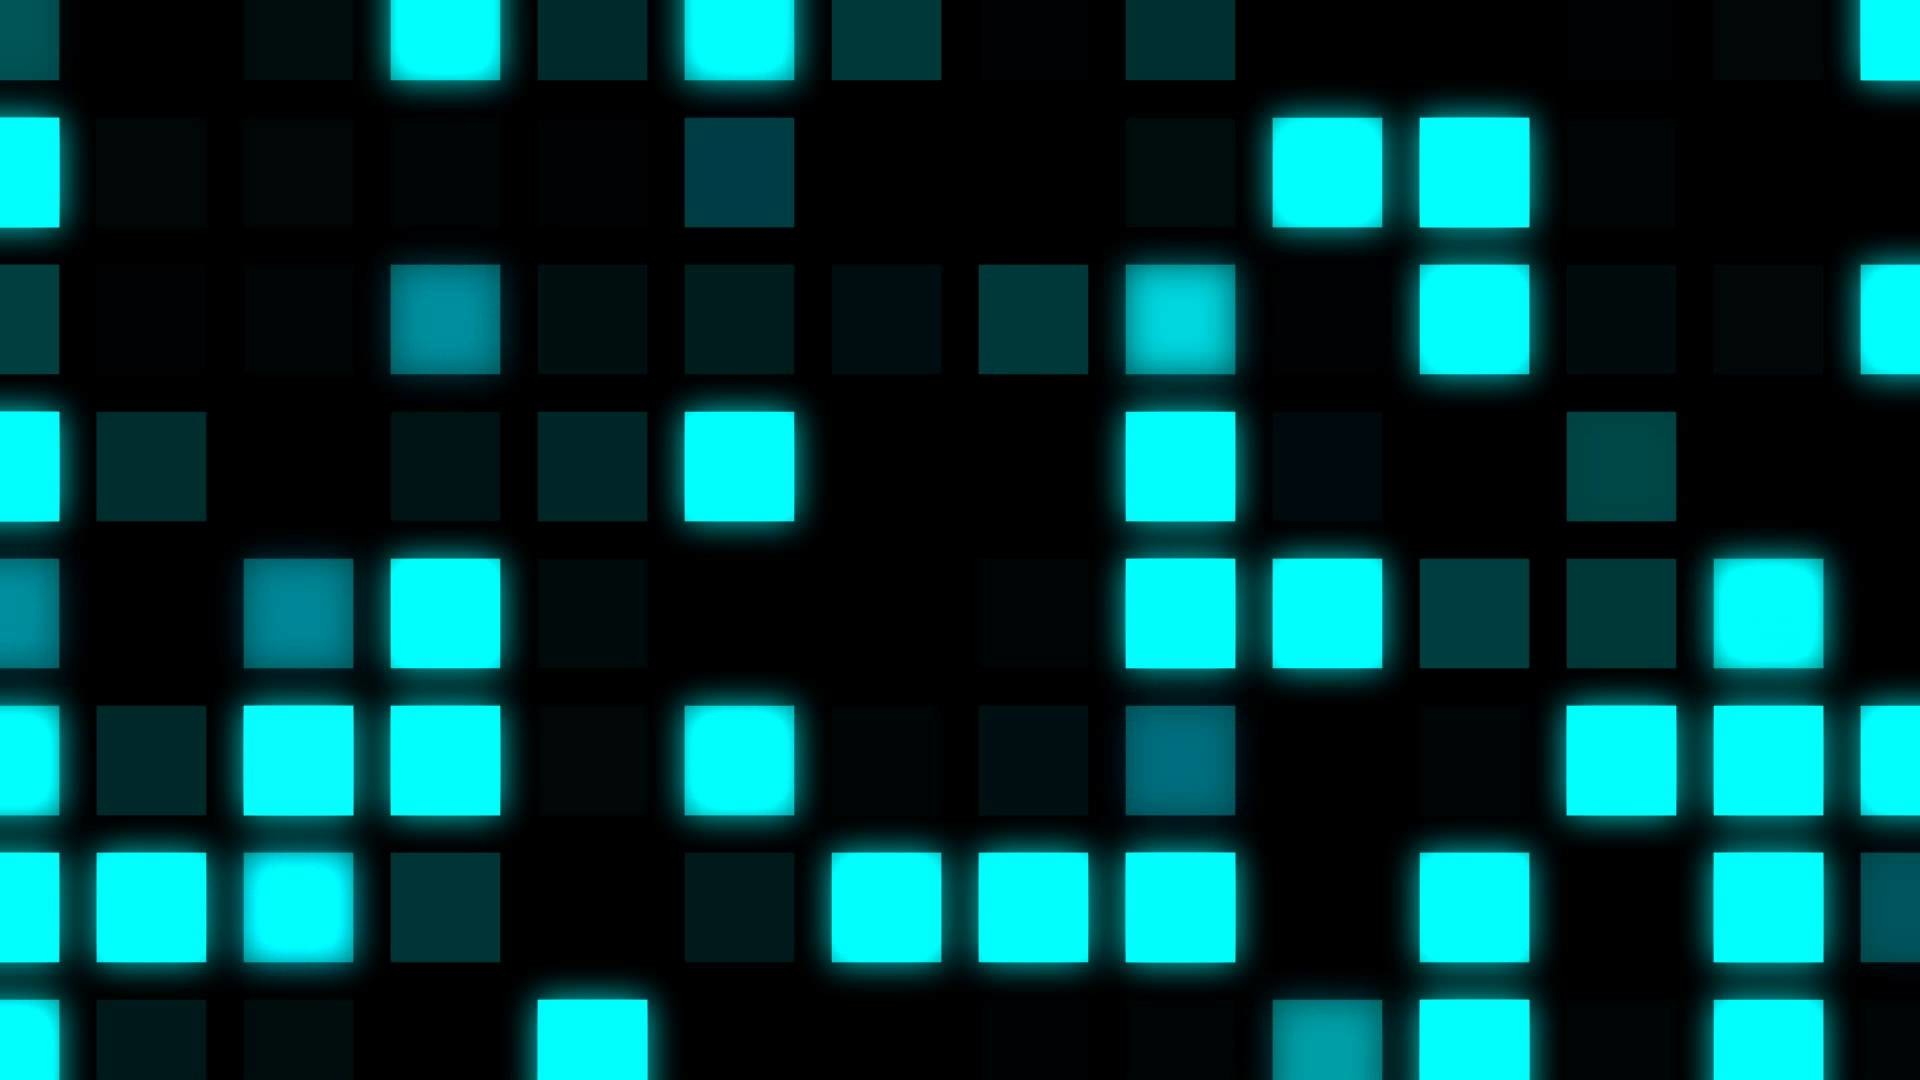 Videogame Background ANIMATION FREE FOOTAGE HD Big Pixel Cyan square –  YouTube